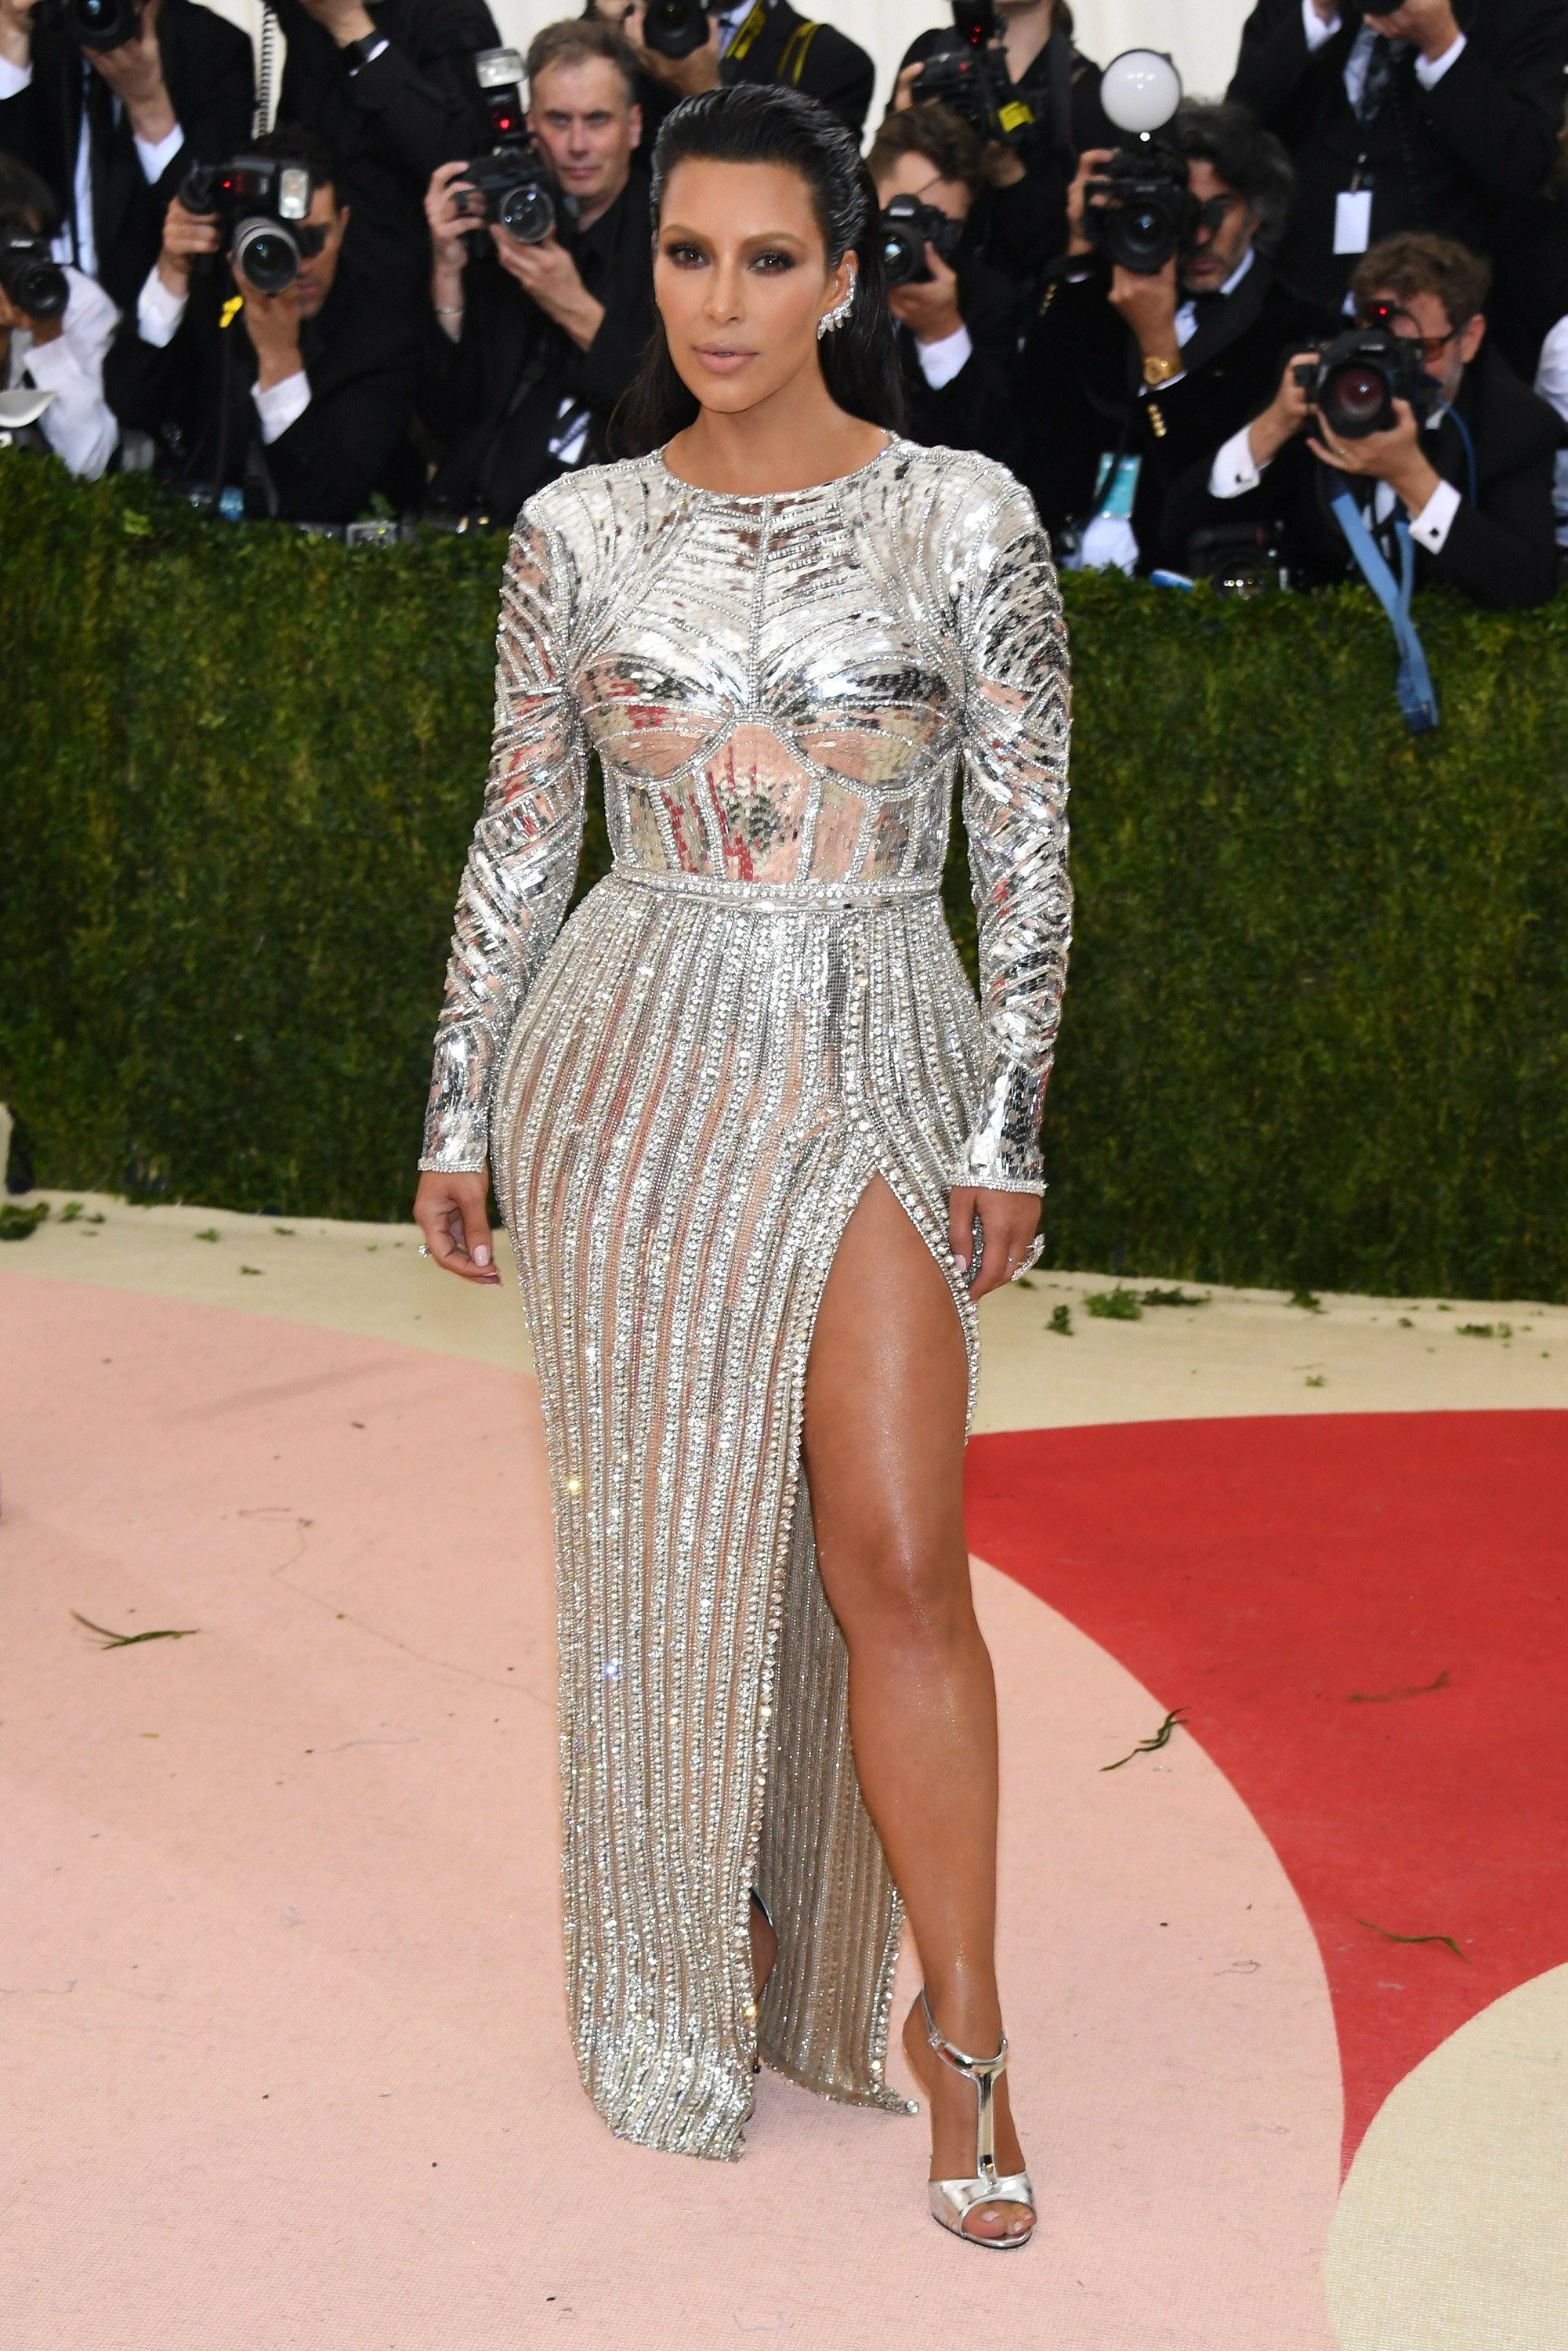 2019 year for women- Awesome kim kanye met ball